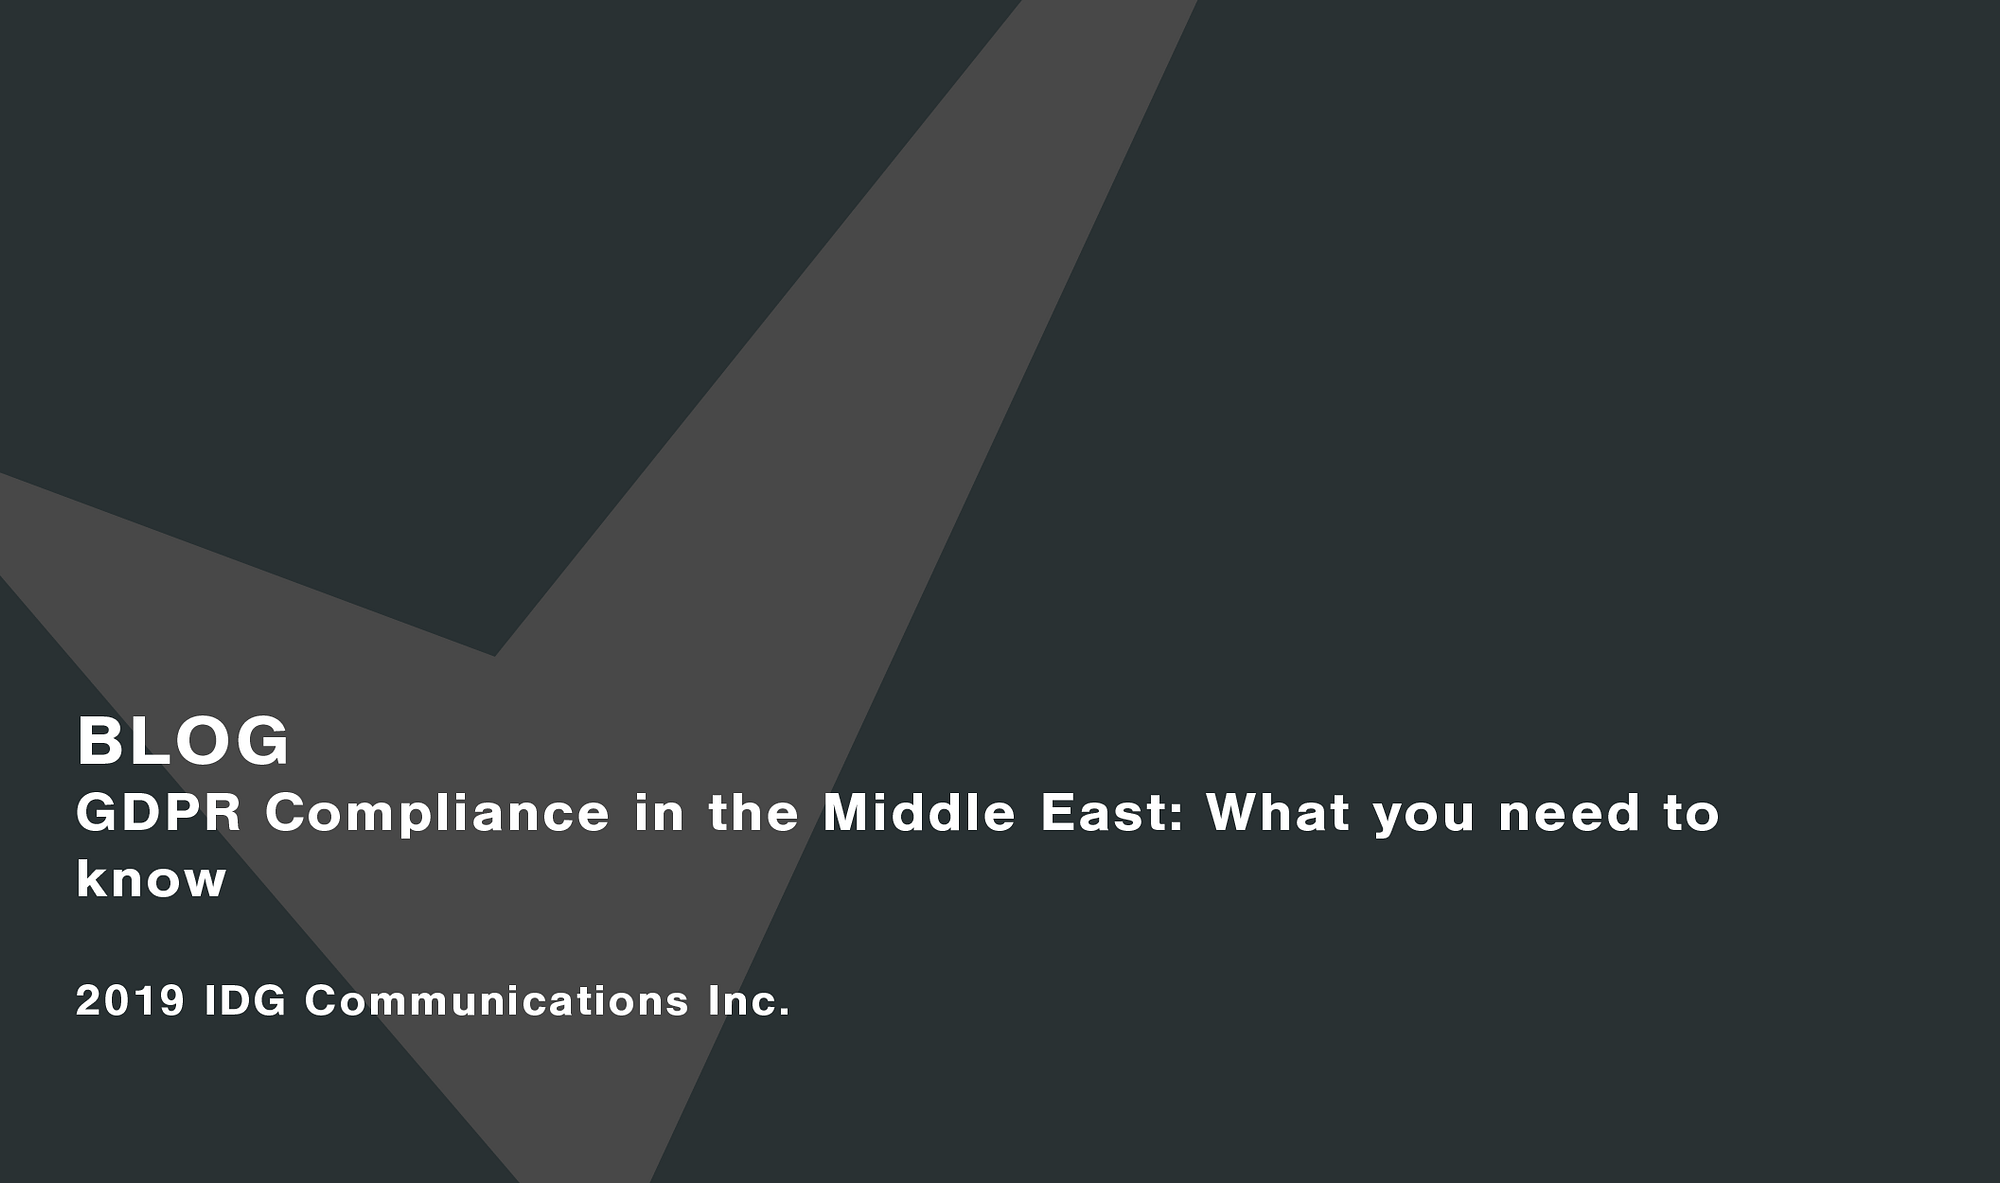 GDPR-Compliance-in-the-Middle-East-What-you-need-to-know